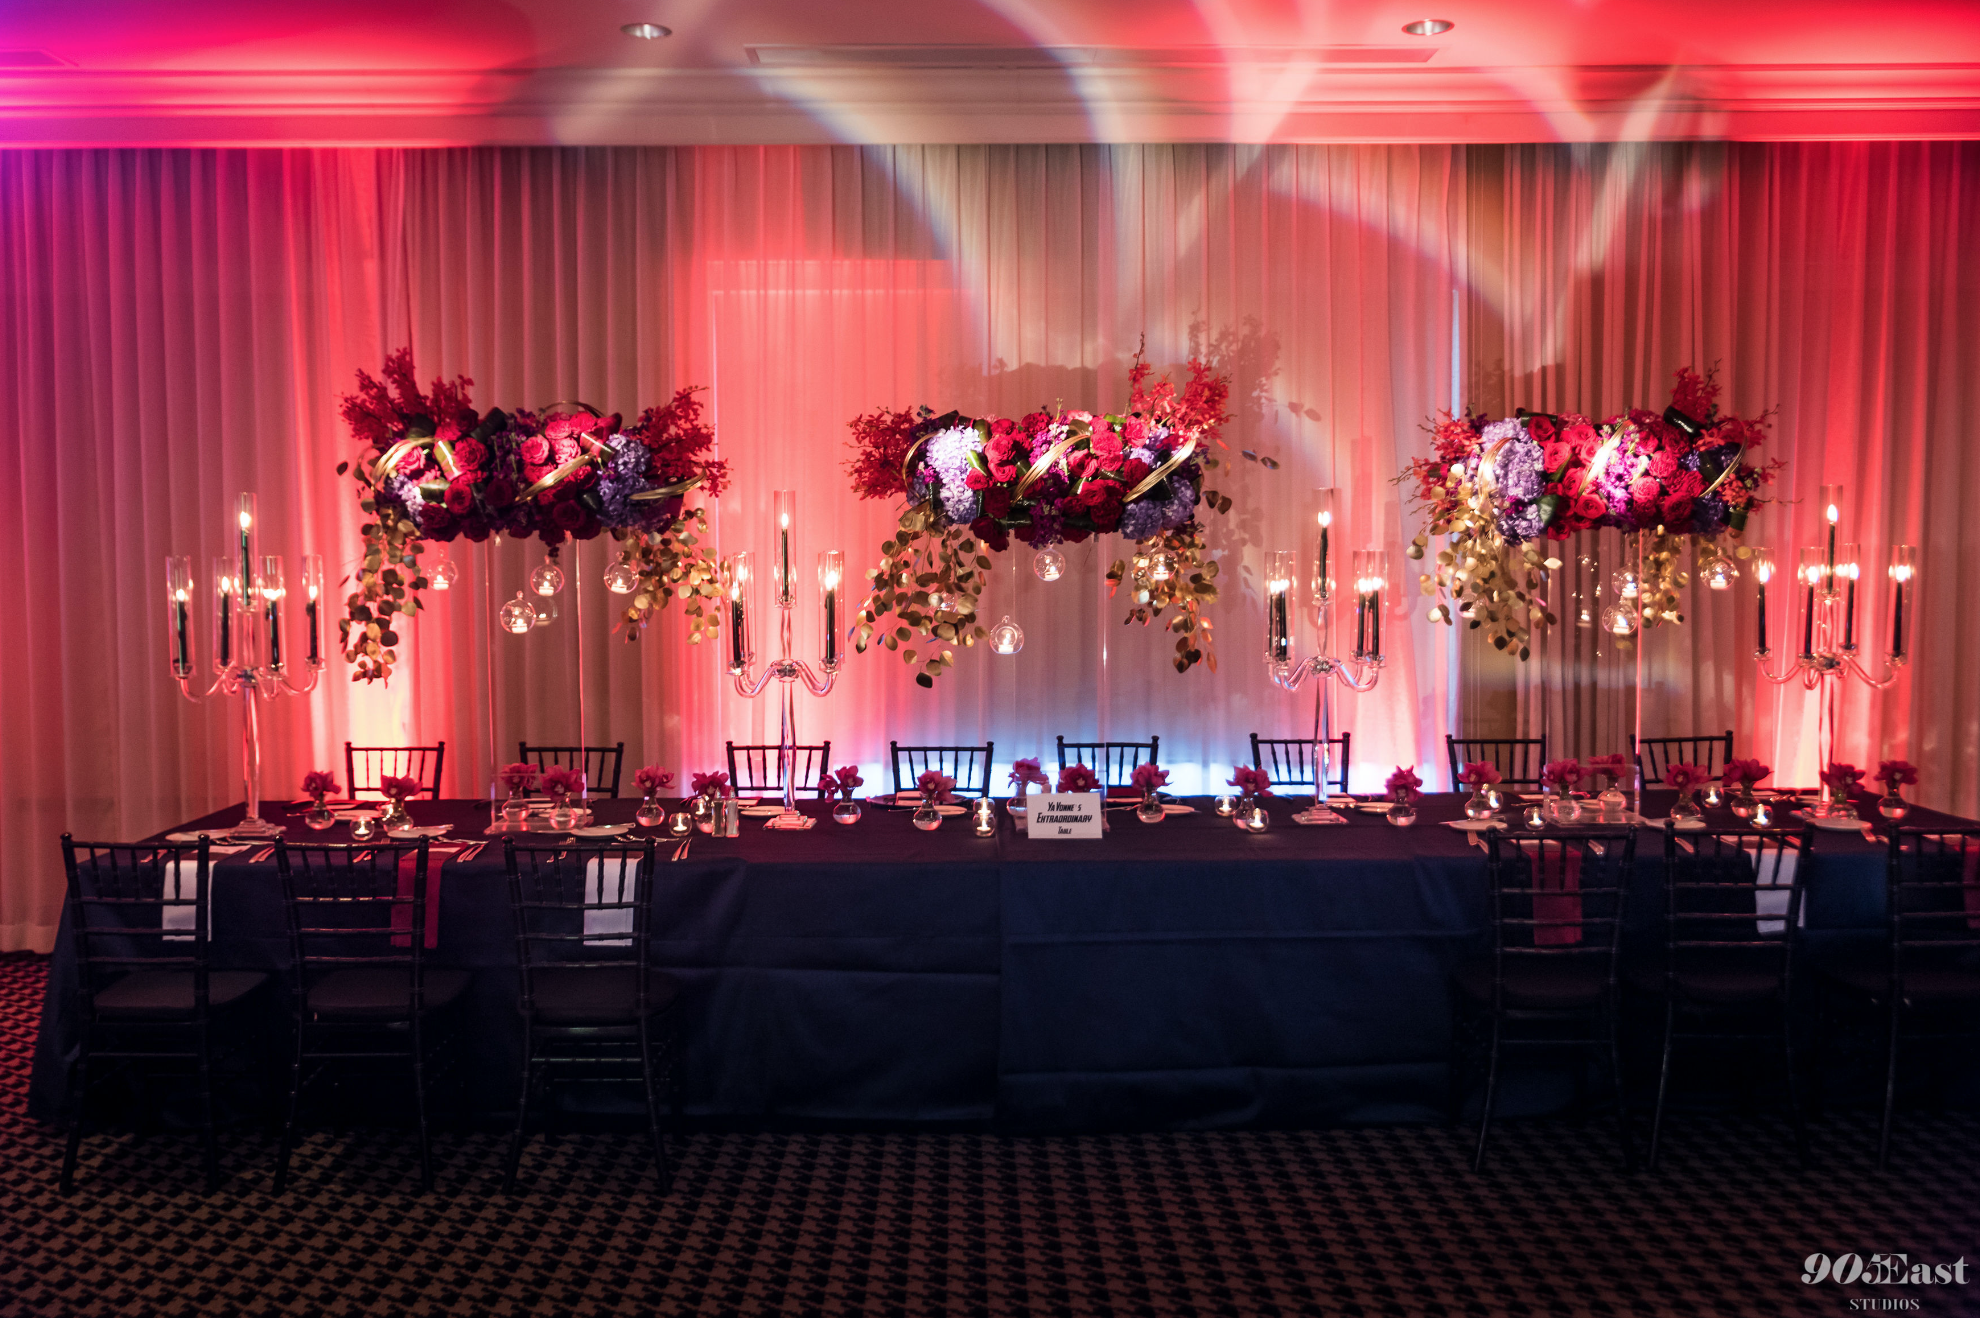 Our draping technicians transform staid venue walls and create areas to project graphics or create colorful lighting palettes.